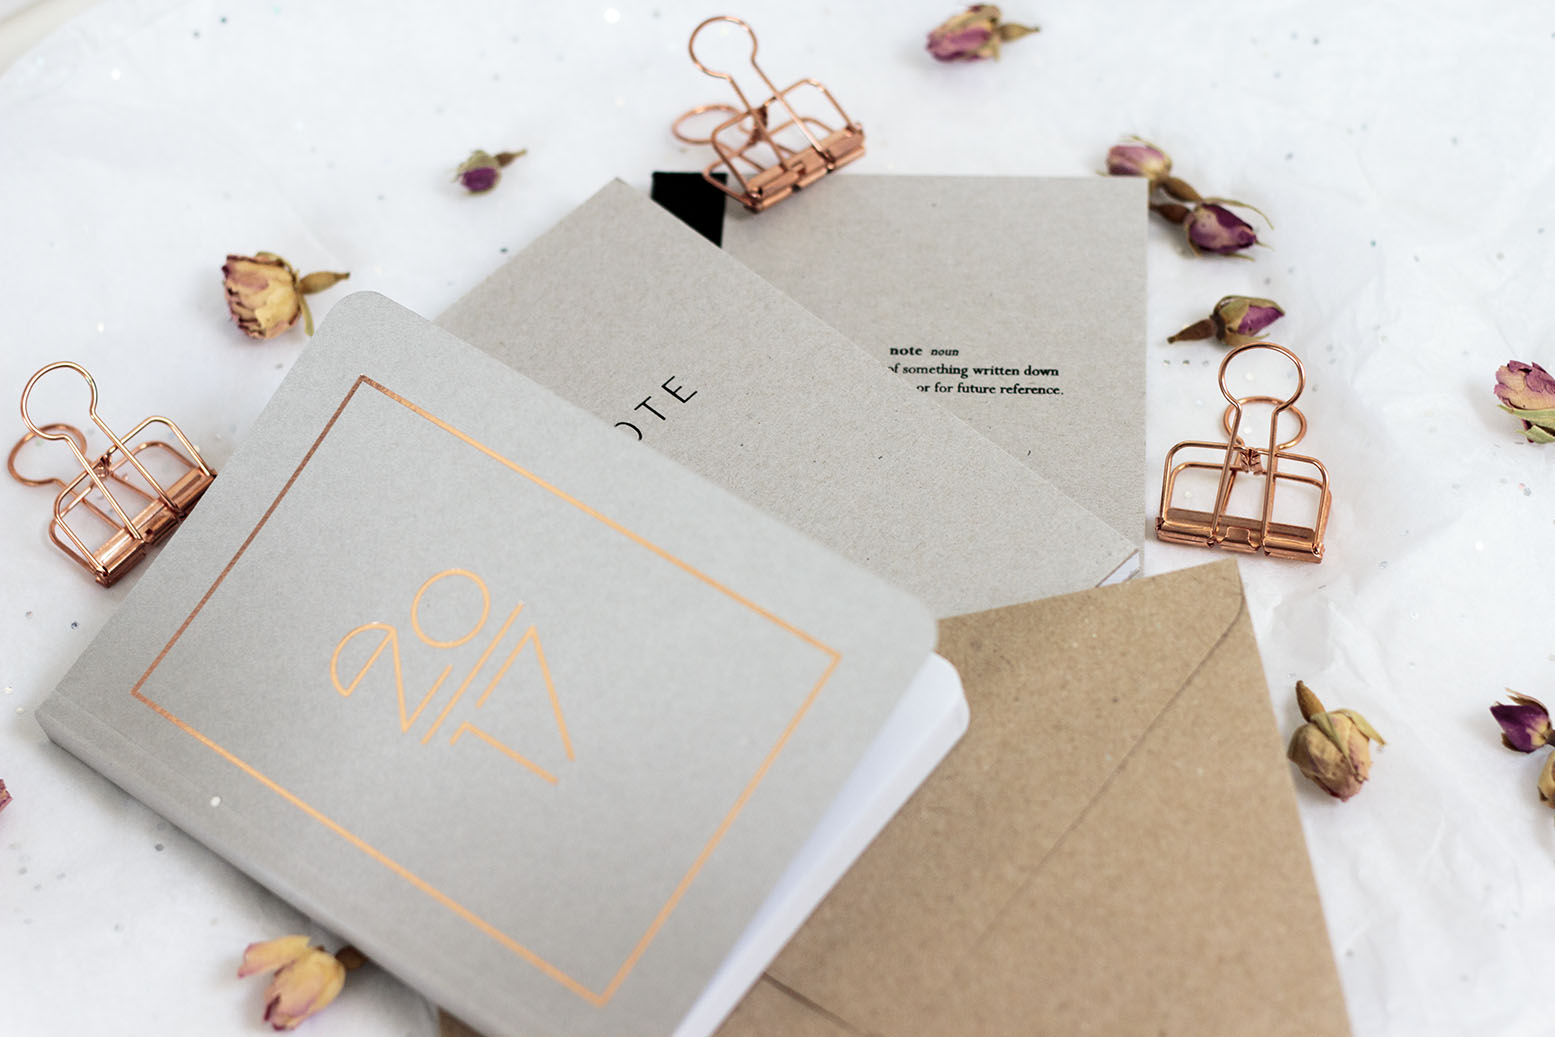 Brainy days stationery